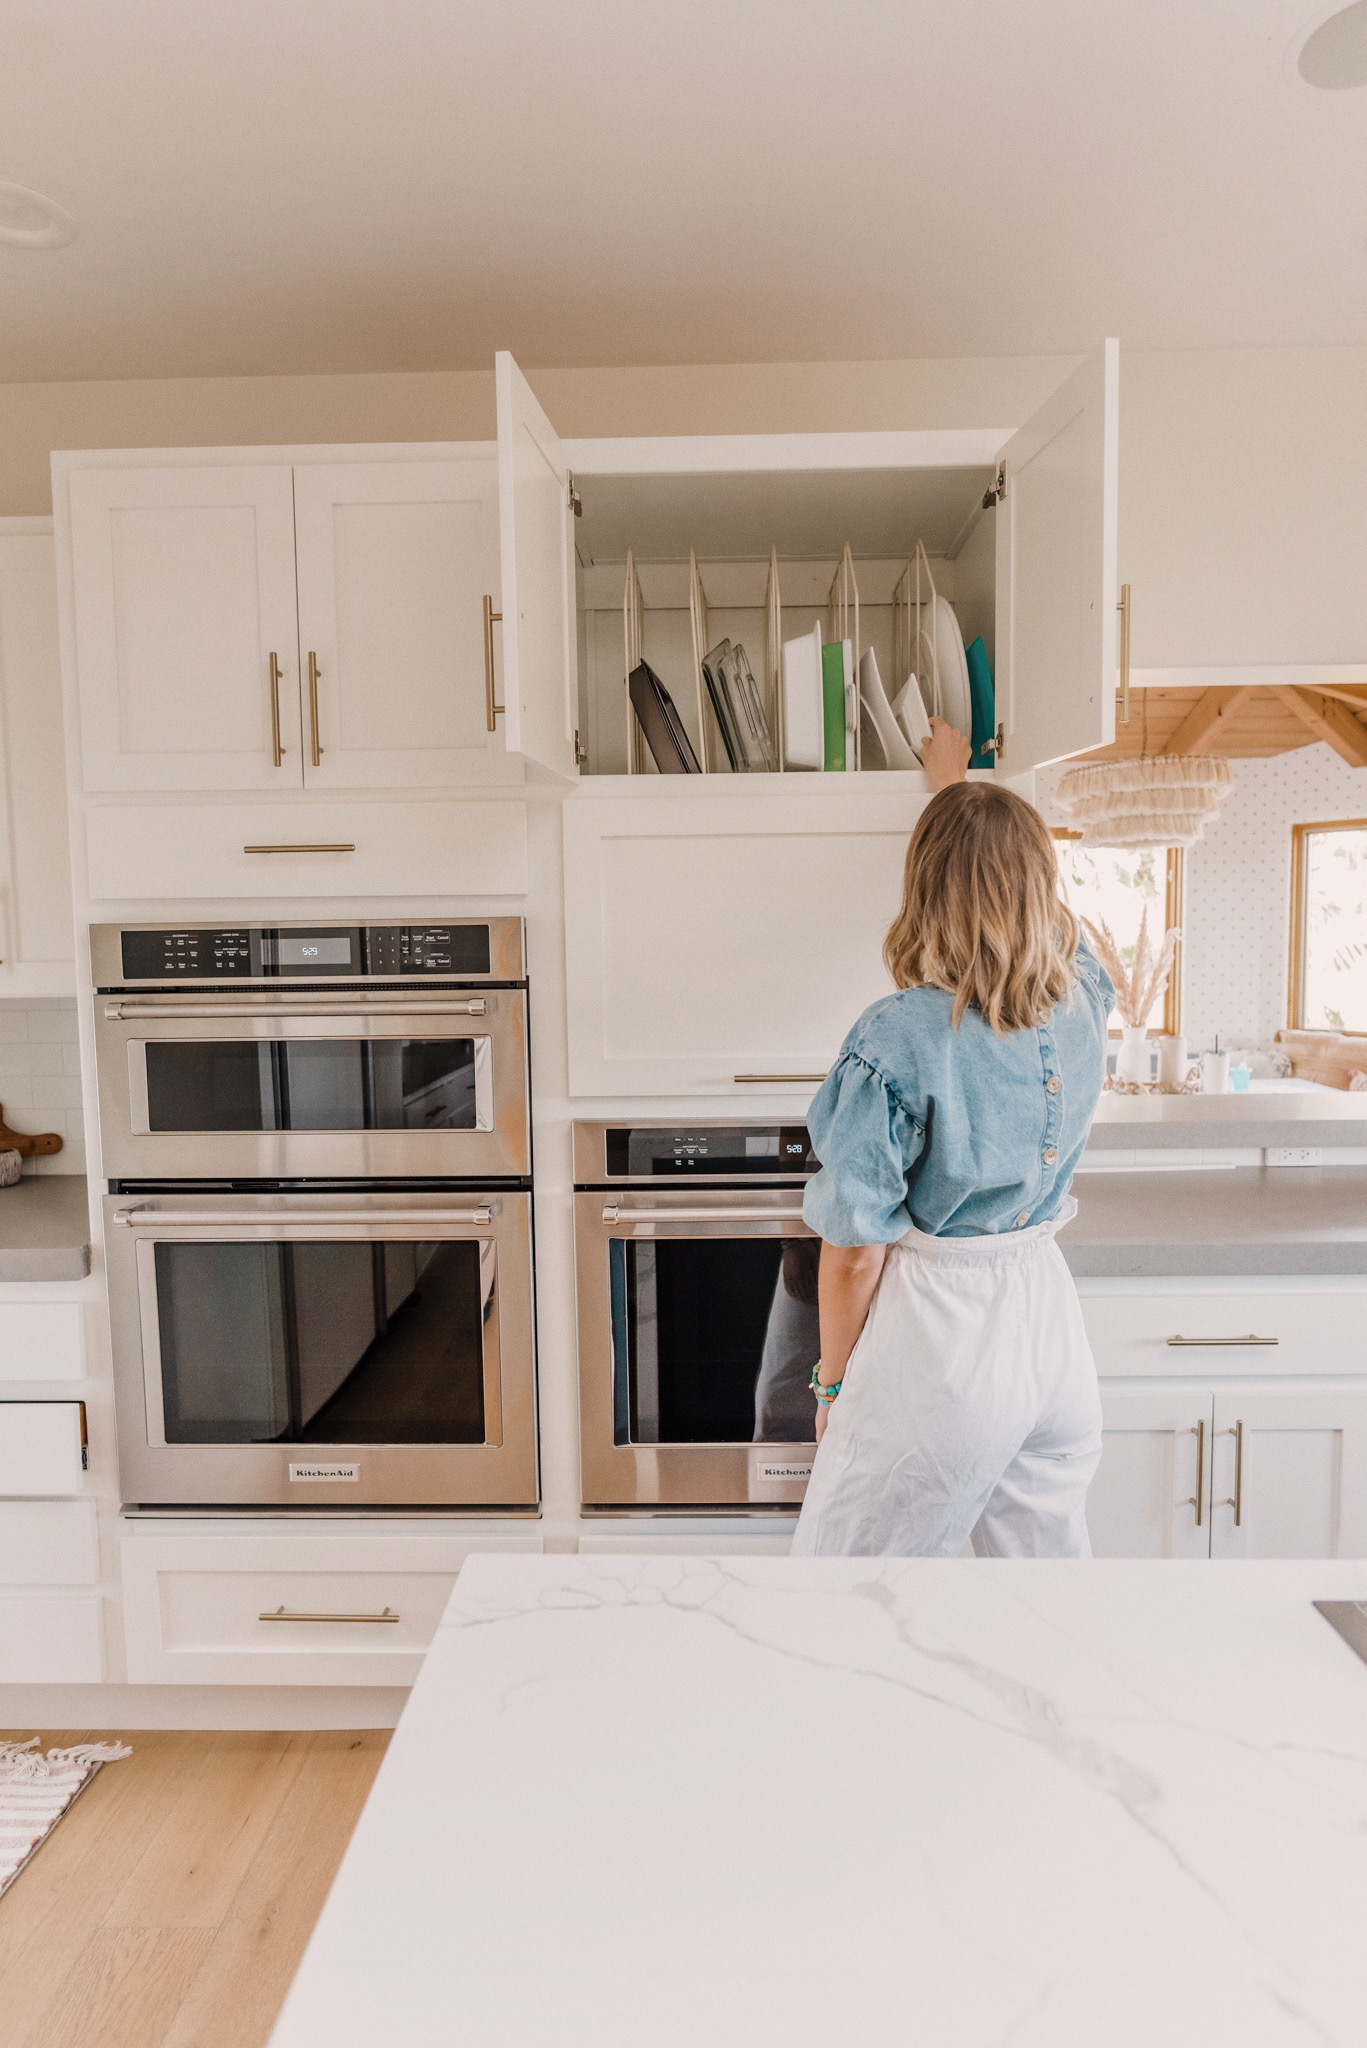 Kitchen Organization Products by popular San Diego life and style blog, Navy Grace: image of a woman wearing a THE ODELLS: EVERLY BUTTON BACK TOP, Urban Outfitters BDG Wisconsin Casual Ecru Pant, and Cecelia GLORIA mule while looking in a kitchen cupboard.